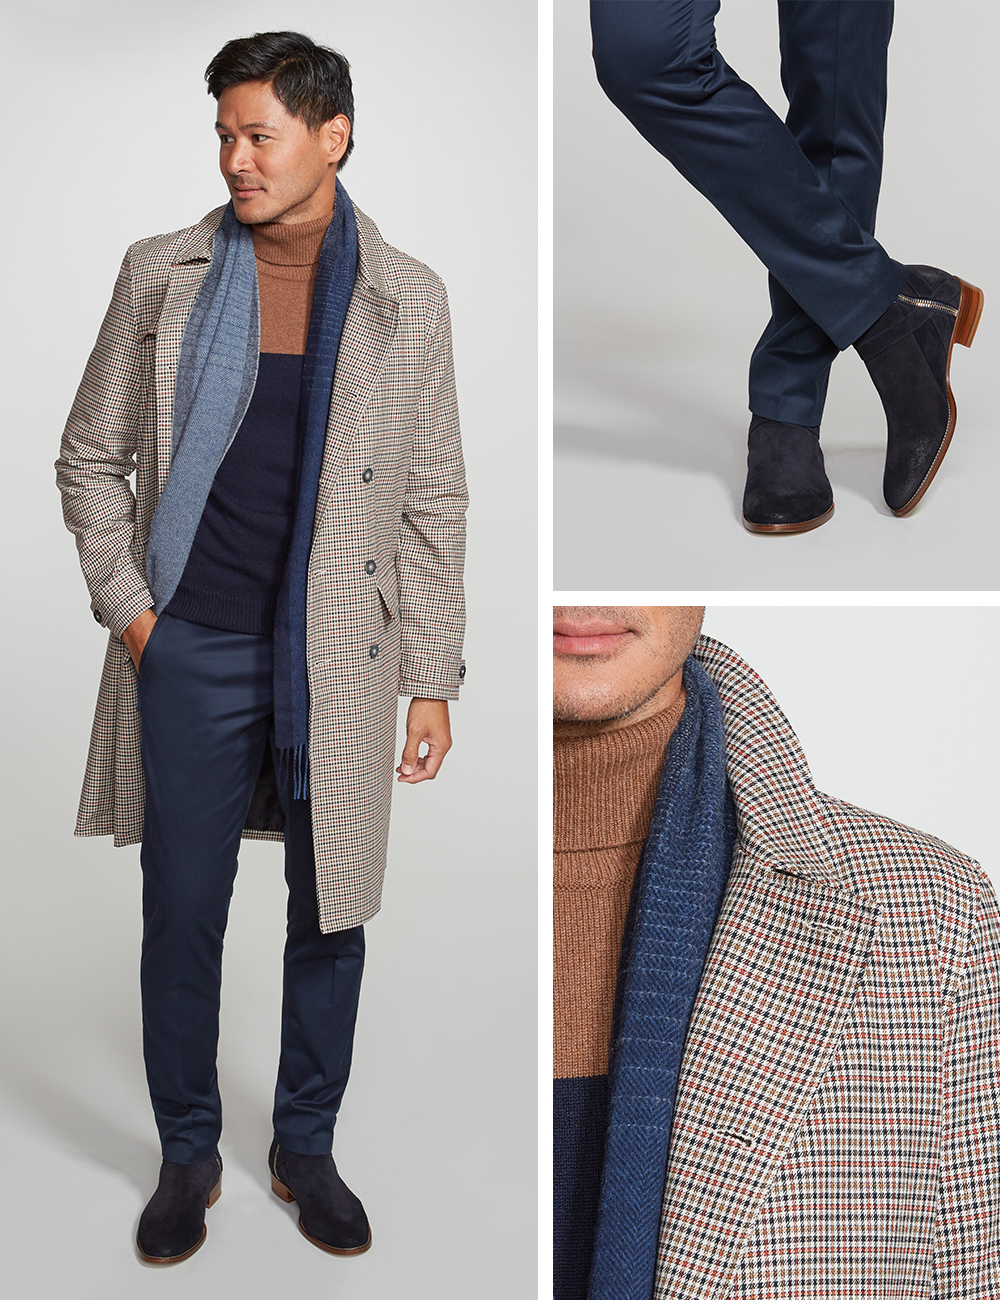 Men's fall outfit with topcoat